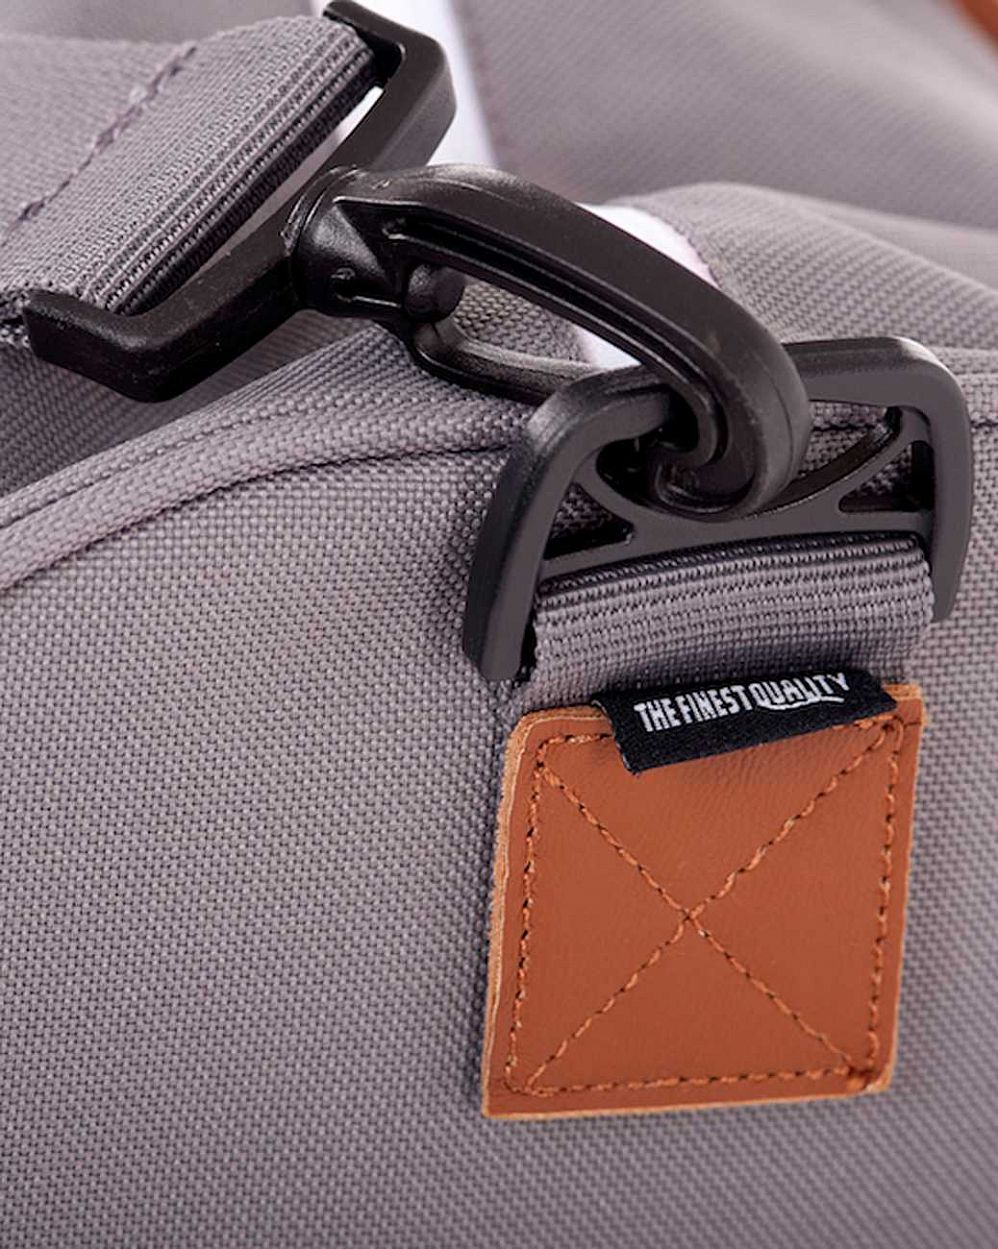 Сумка спортивная Herschel Ravine Grey Tan отзывы